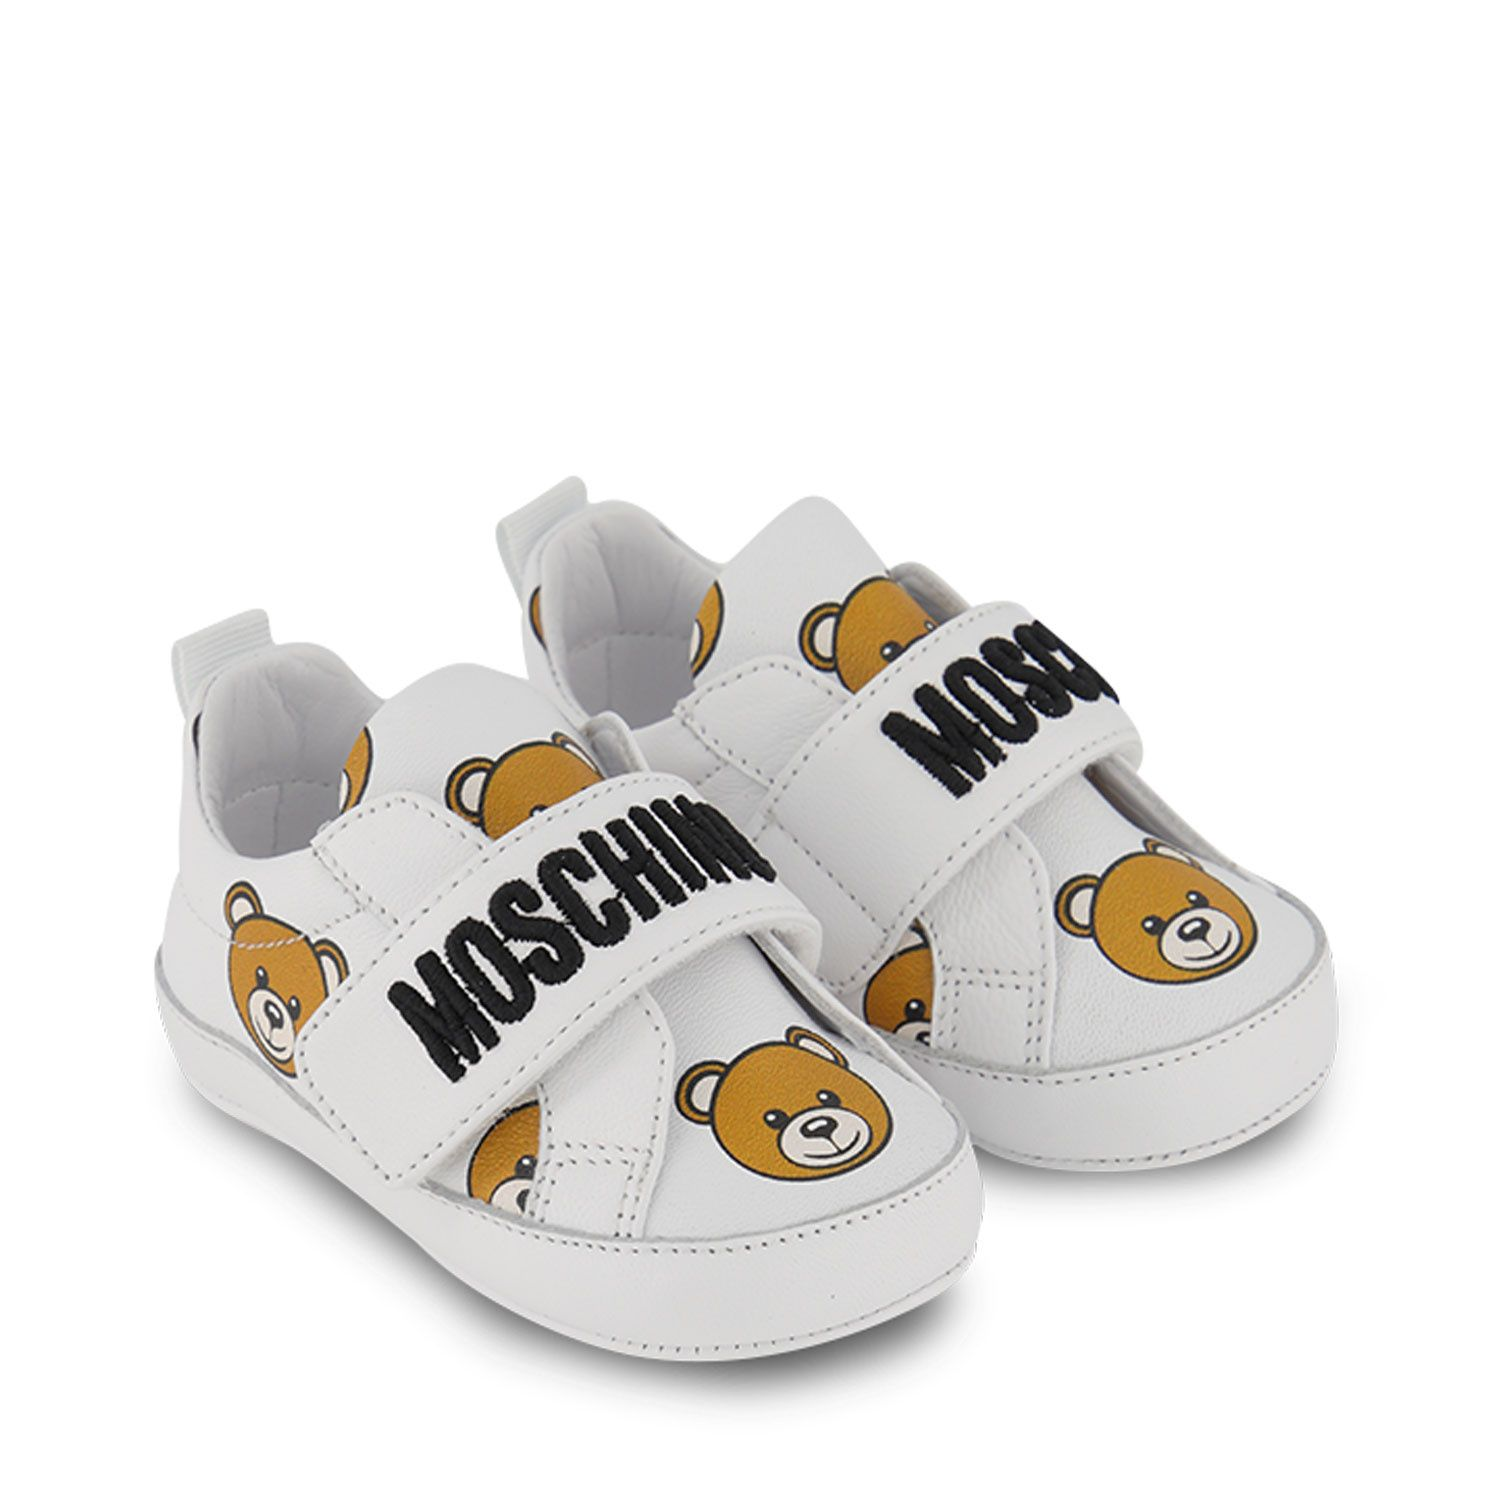 Picture of Moschino 68712 baby sneakers white